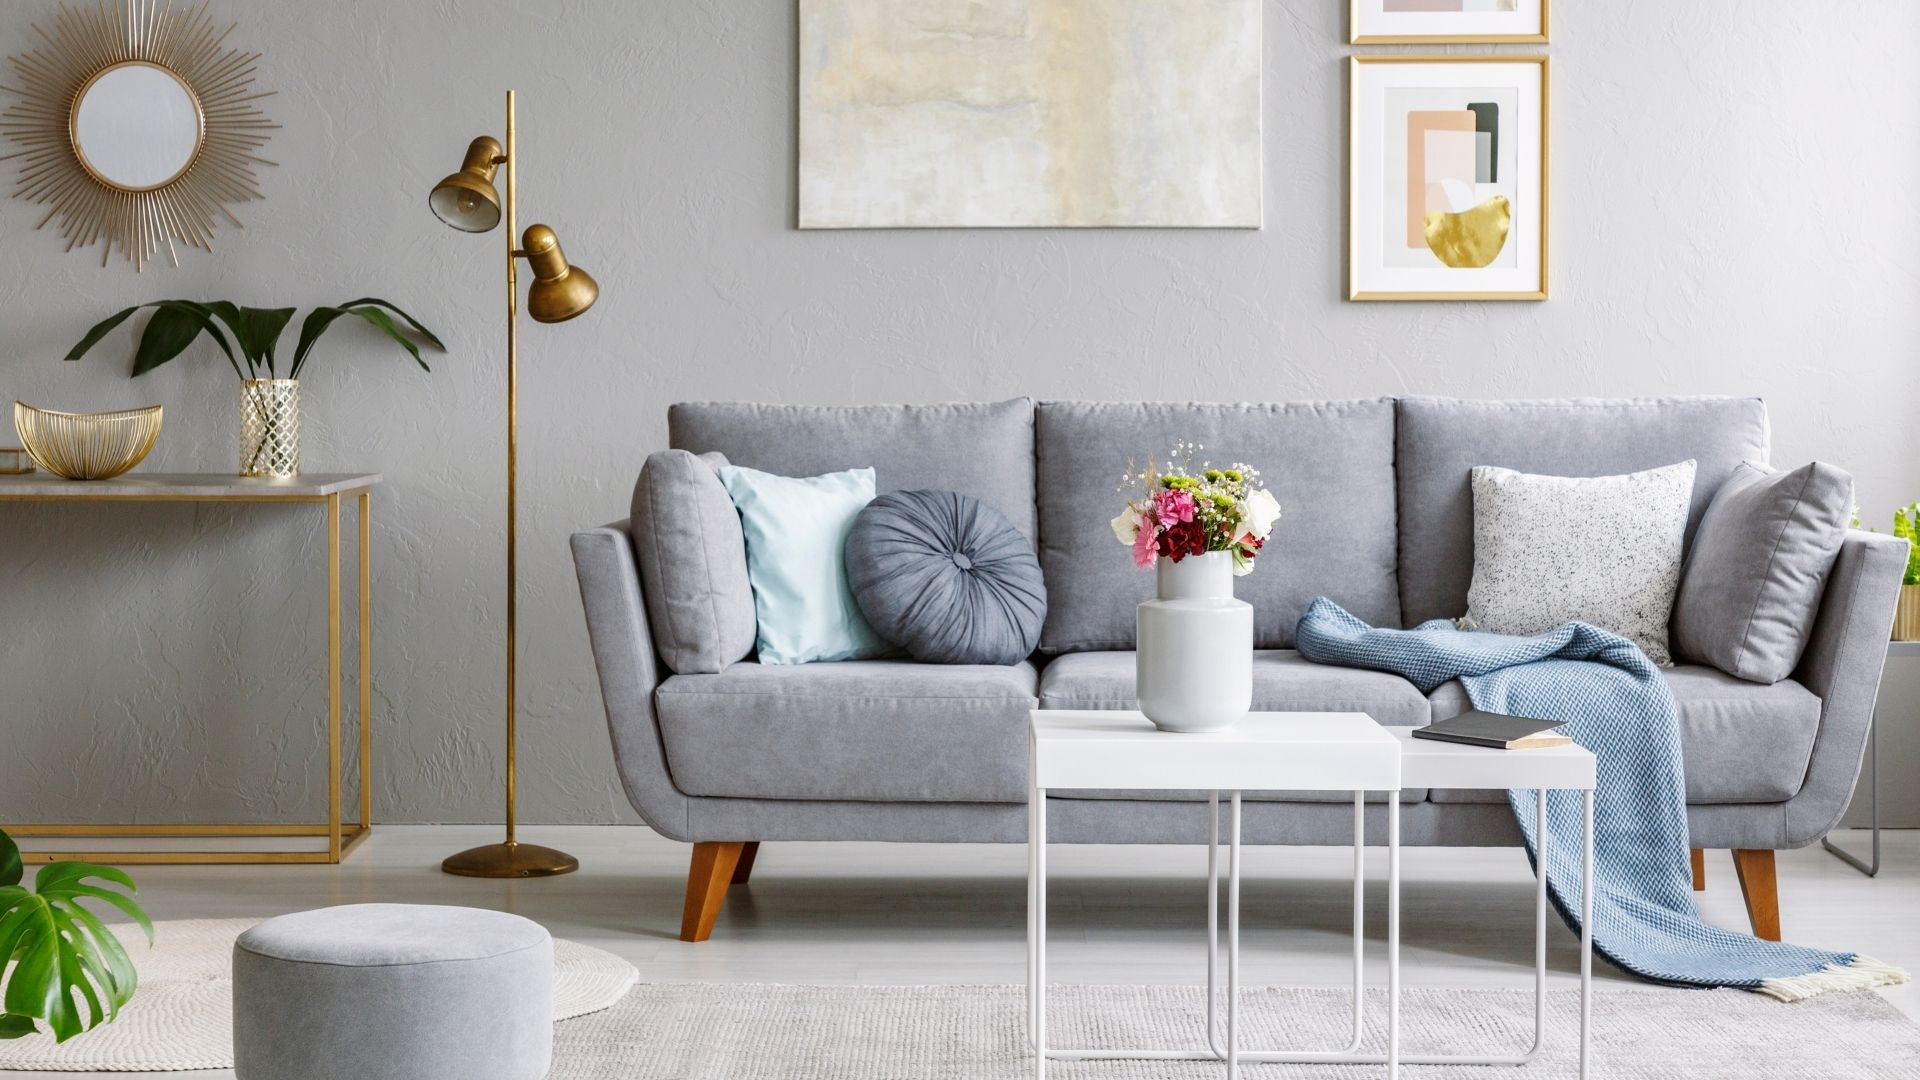 Home Staging Tips | Prepare to Sell Your Home